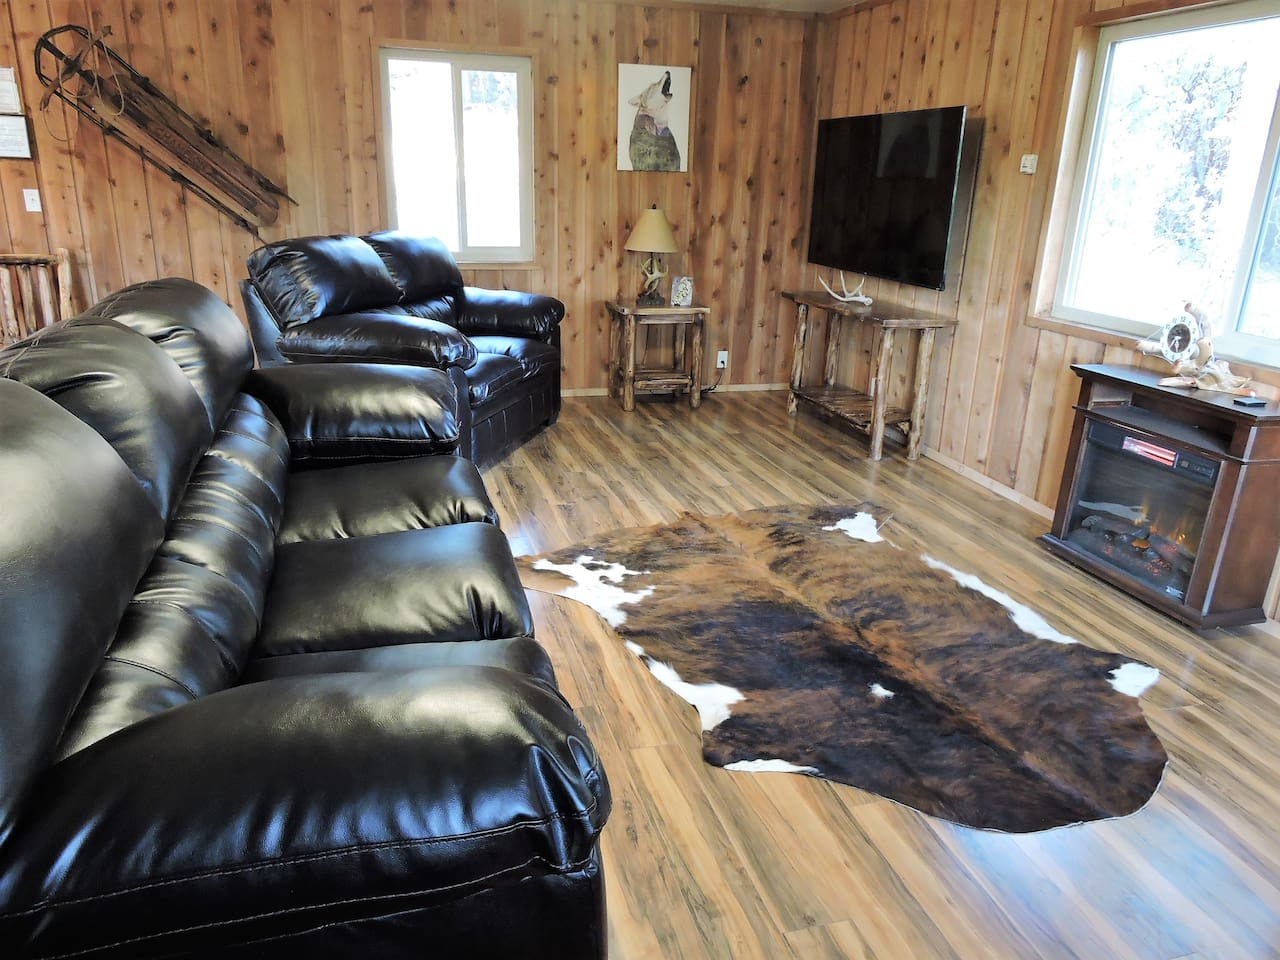 Specious living room with western and wildlife accents.